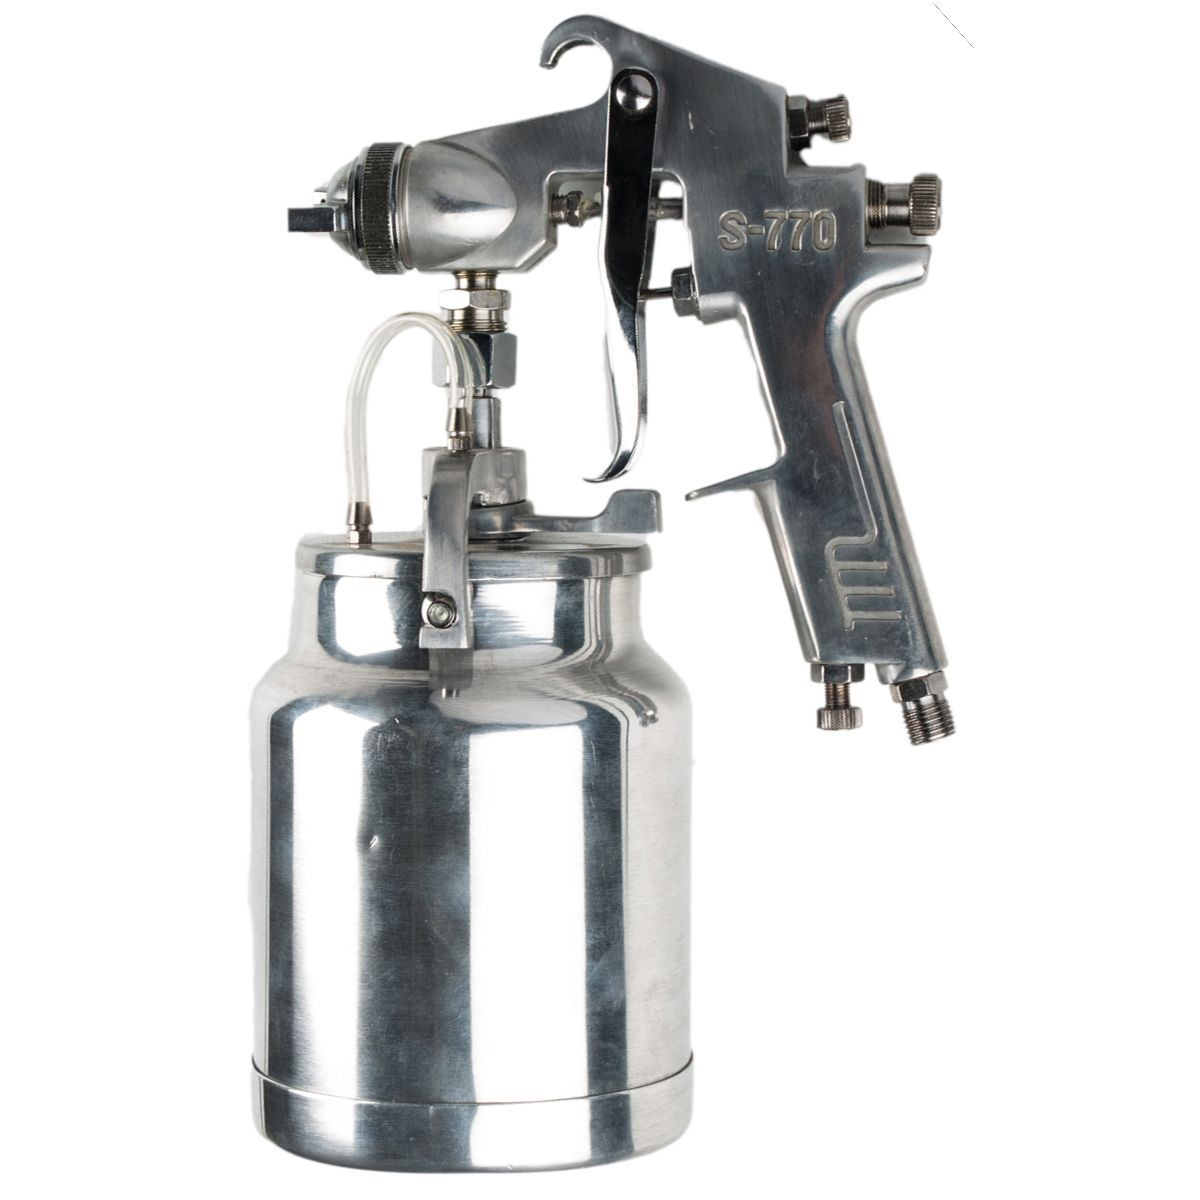 Up To 60 Off S 770 Professional Quality Spray Gun 1 5mm